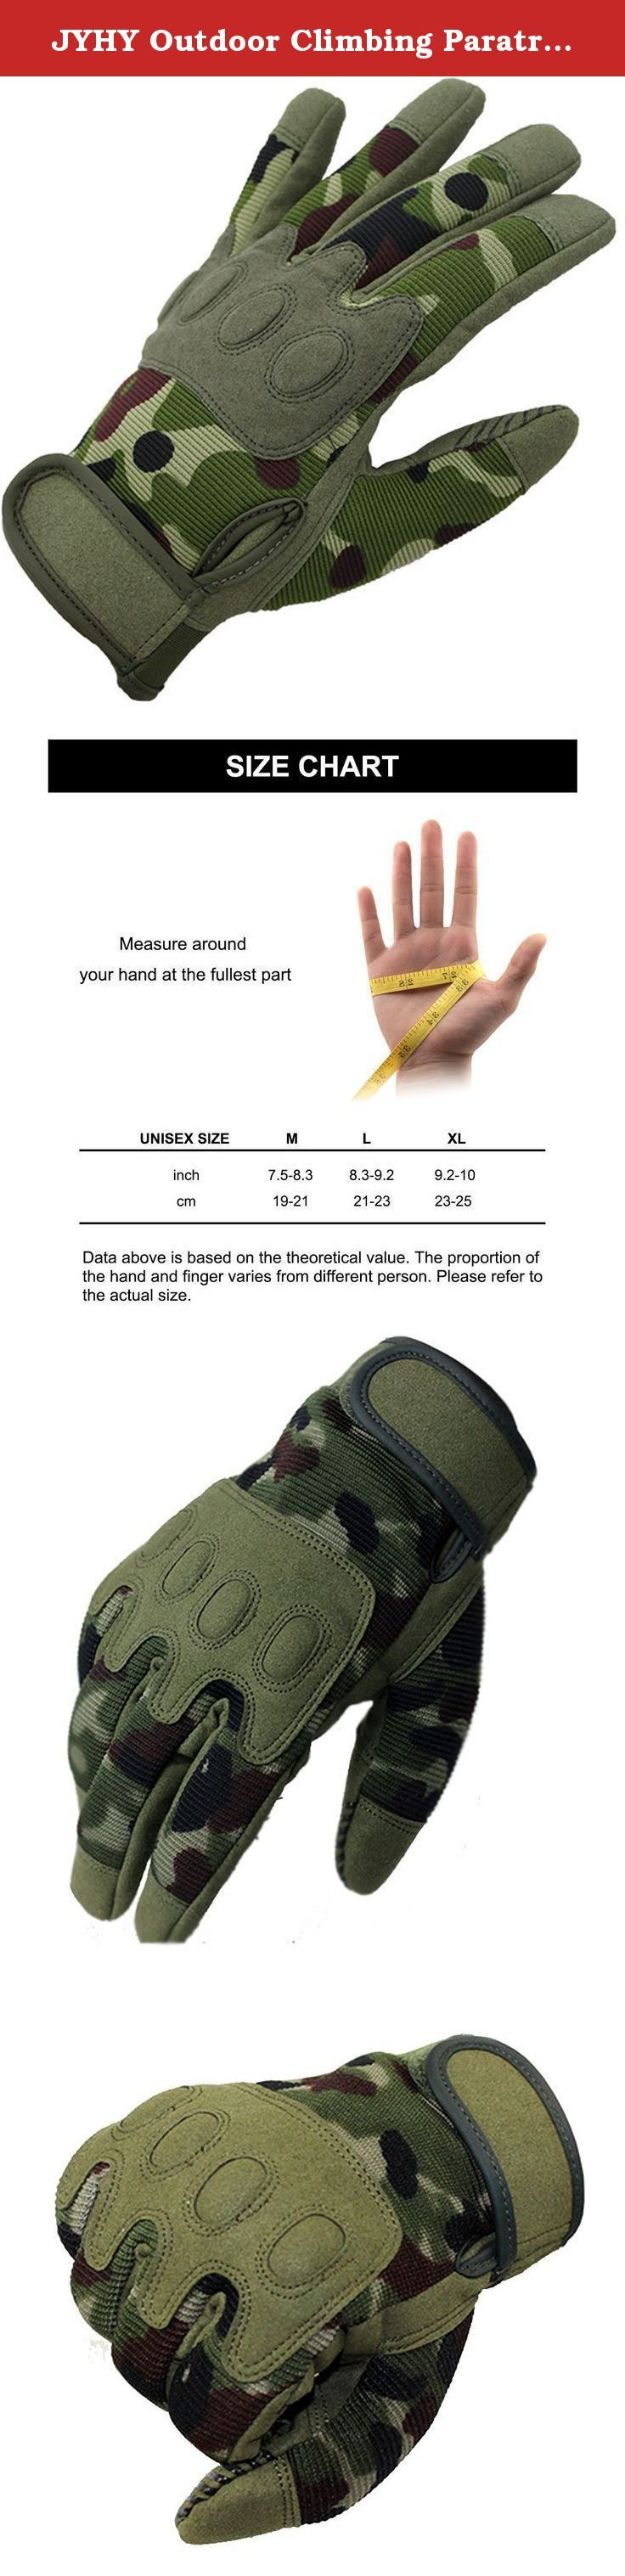 JYHY Outdoor Climbing Paratrooper Training Full Finger Protective Camouflage Gloves.Design MTB BMX Motocross Gloves for Cycling Bike Climbing Hiking,L. Size Information: M:8 inch L:9 inch XL:10 inch.